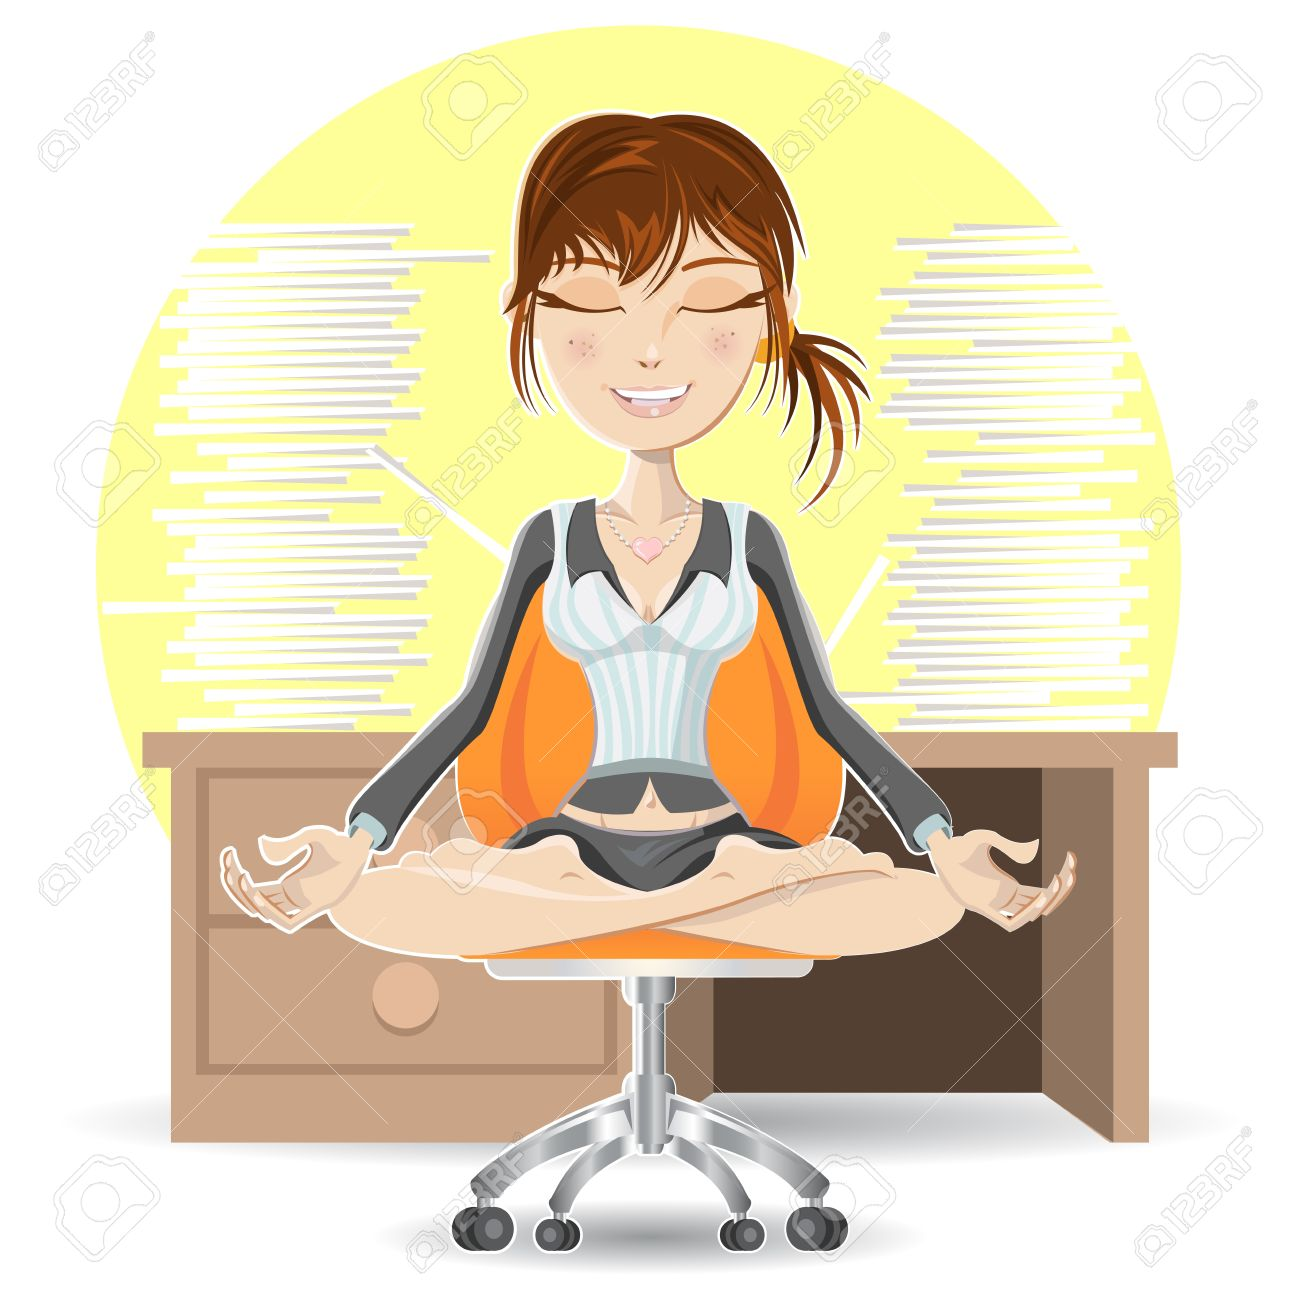 Woman Meditation At The Office Calming Down In Busy Environment - 20707911